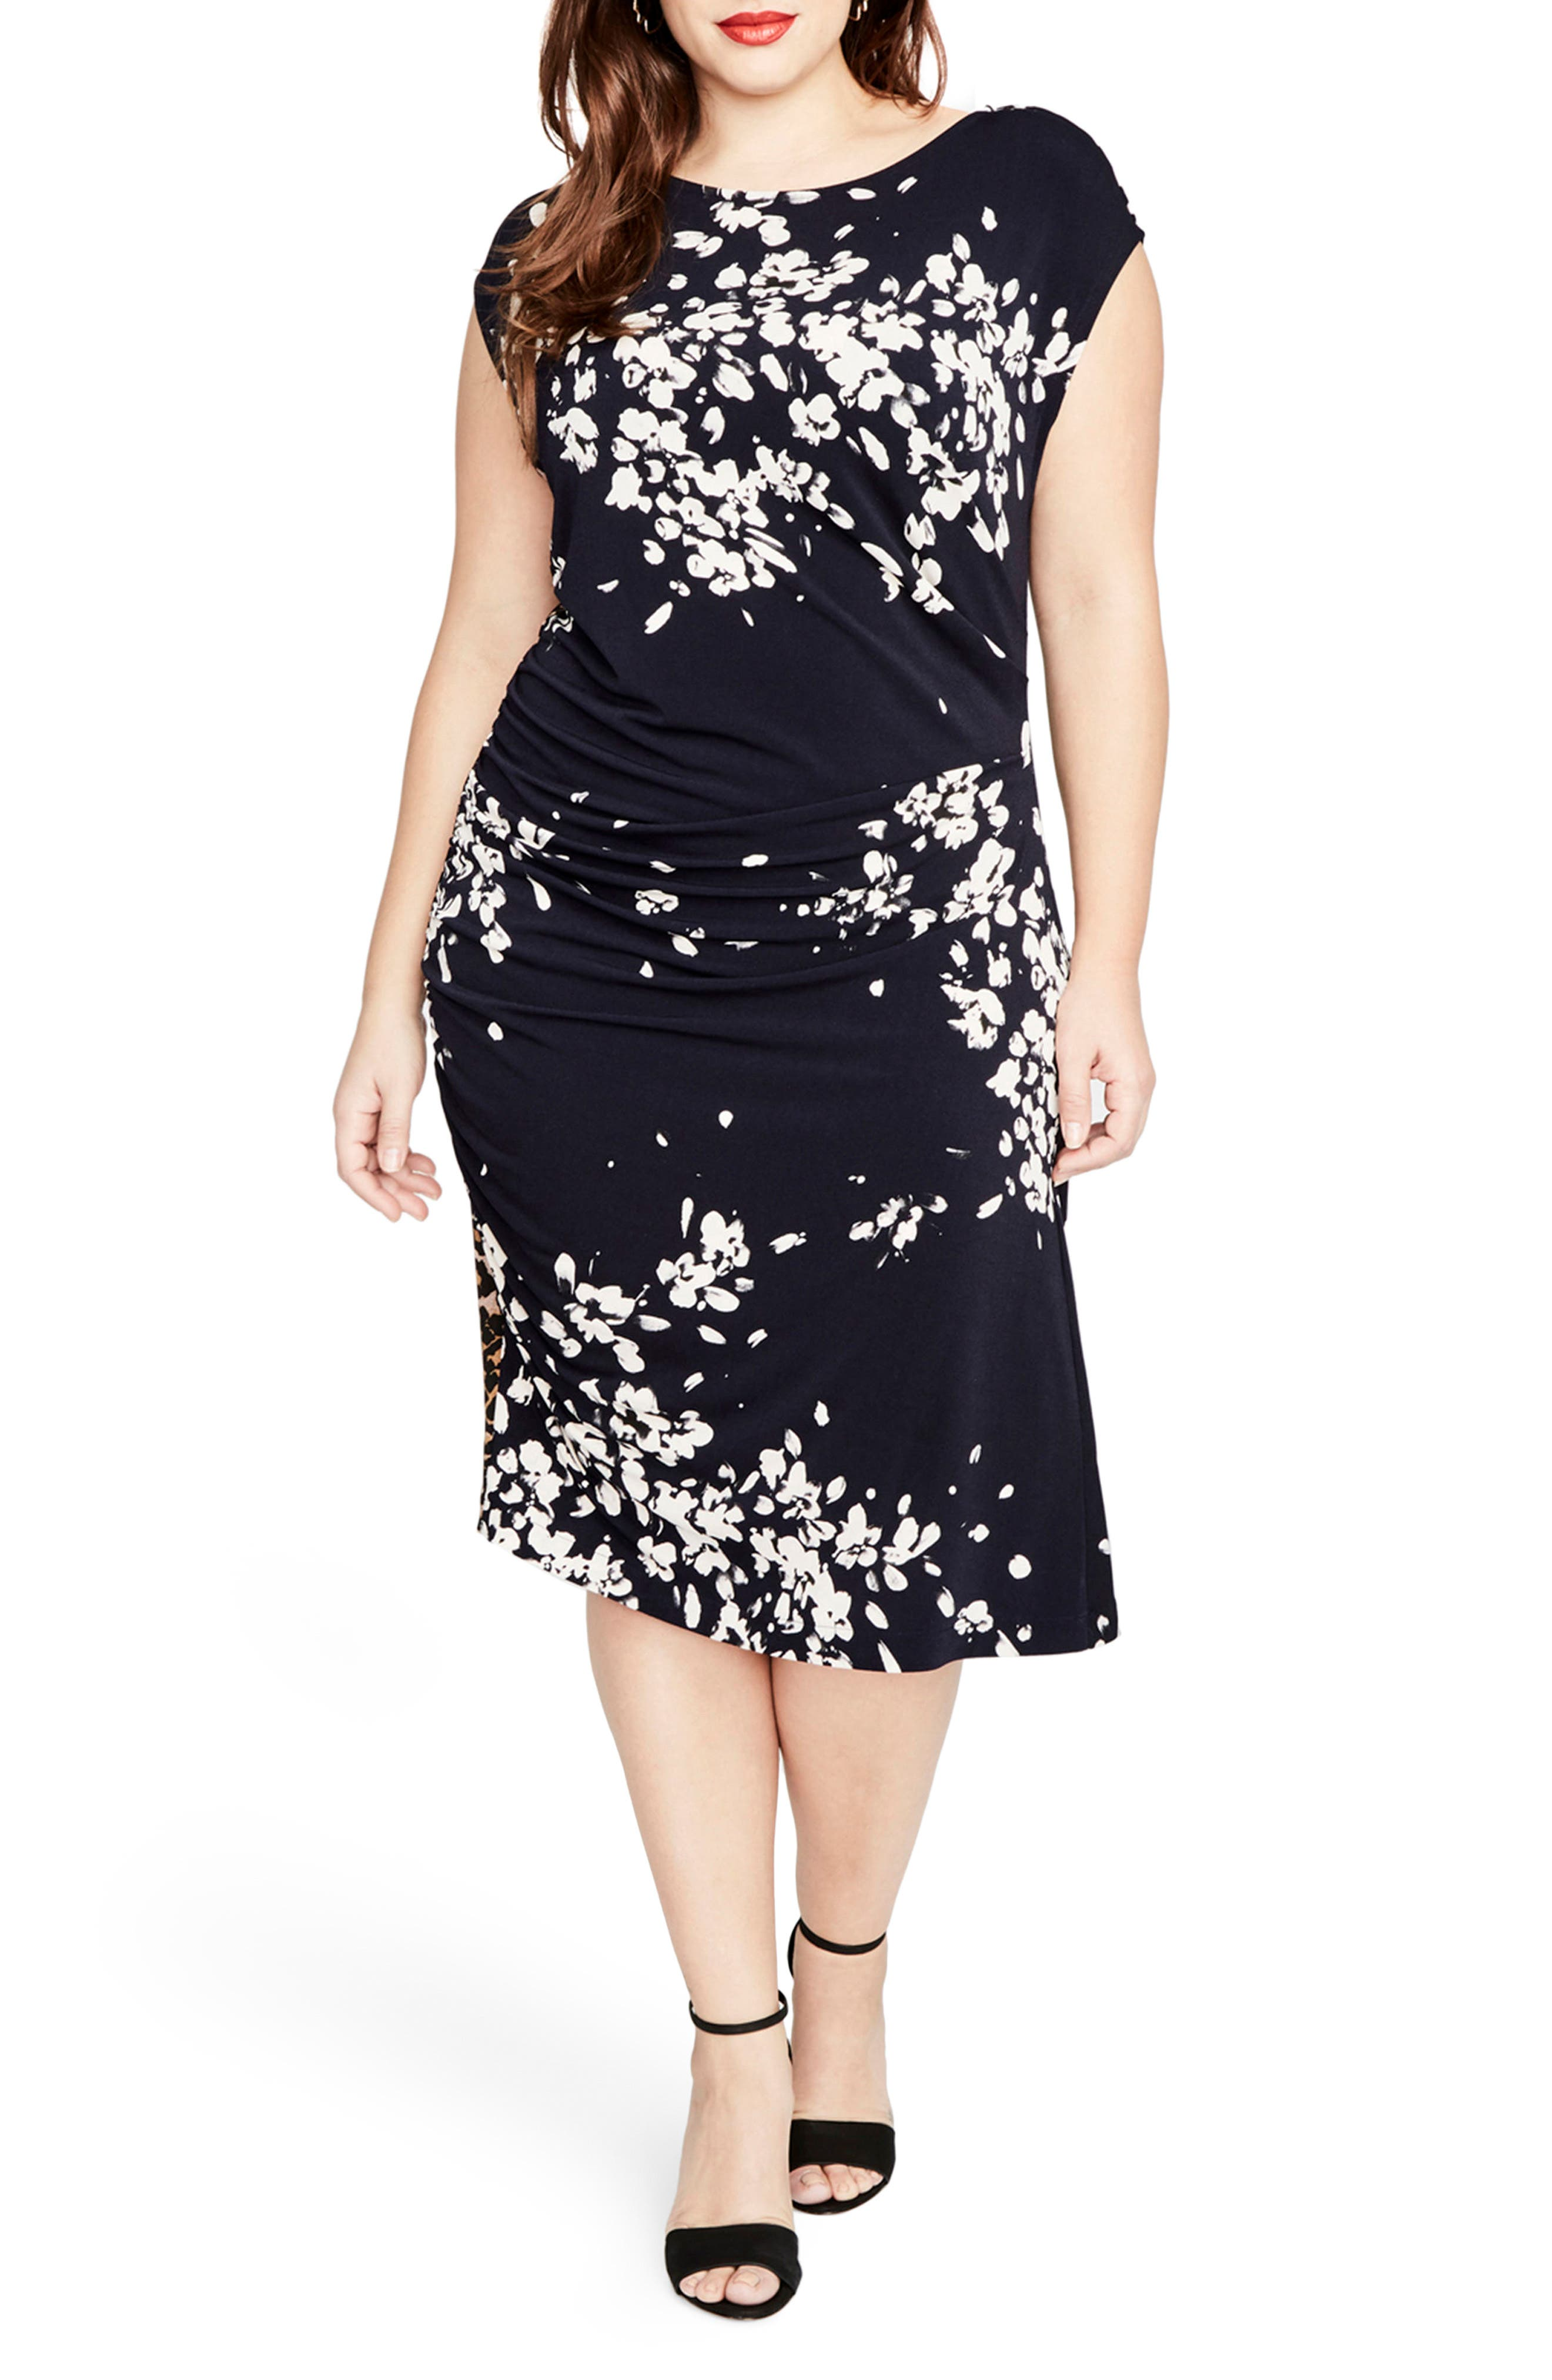 RACHEL RACHEL ROY RACHEL BY Rachel Roy Asymmetrical Floral Dress, Main, color, 411